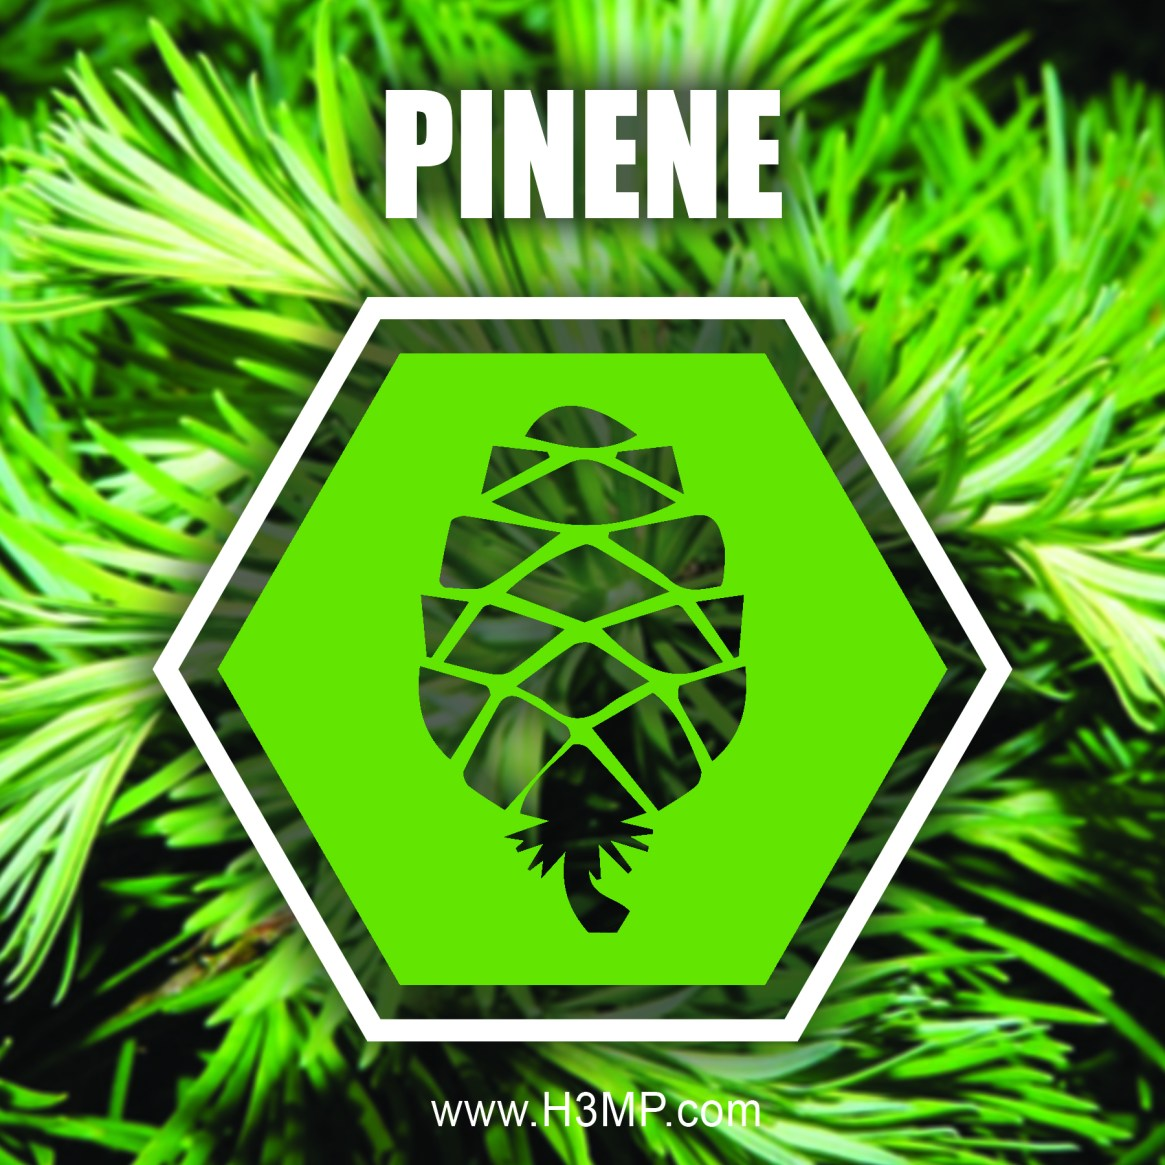 H3MP PINENE_1